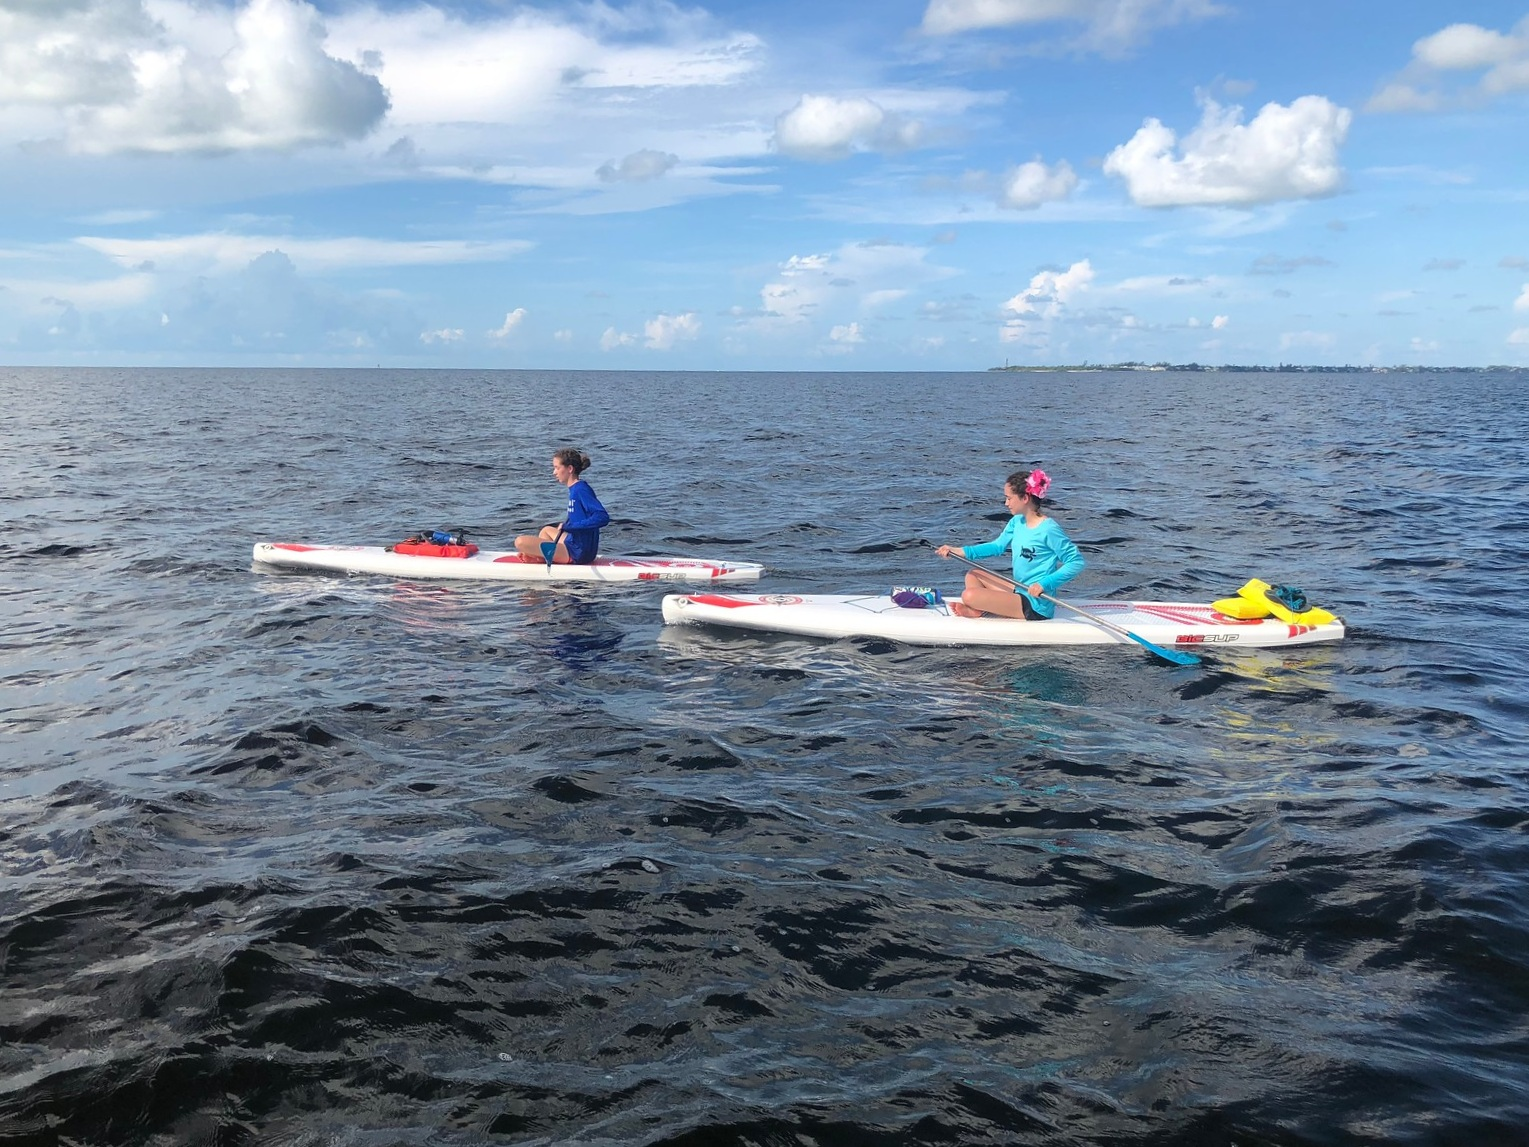 Sitting or kneeling on your board can reduce resistance when paddling in strong winds.